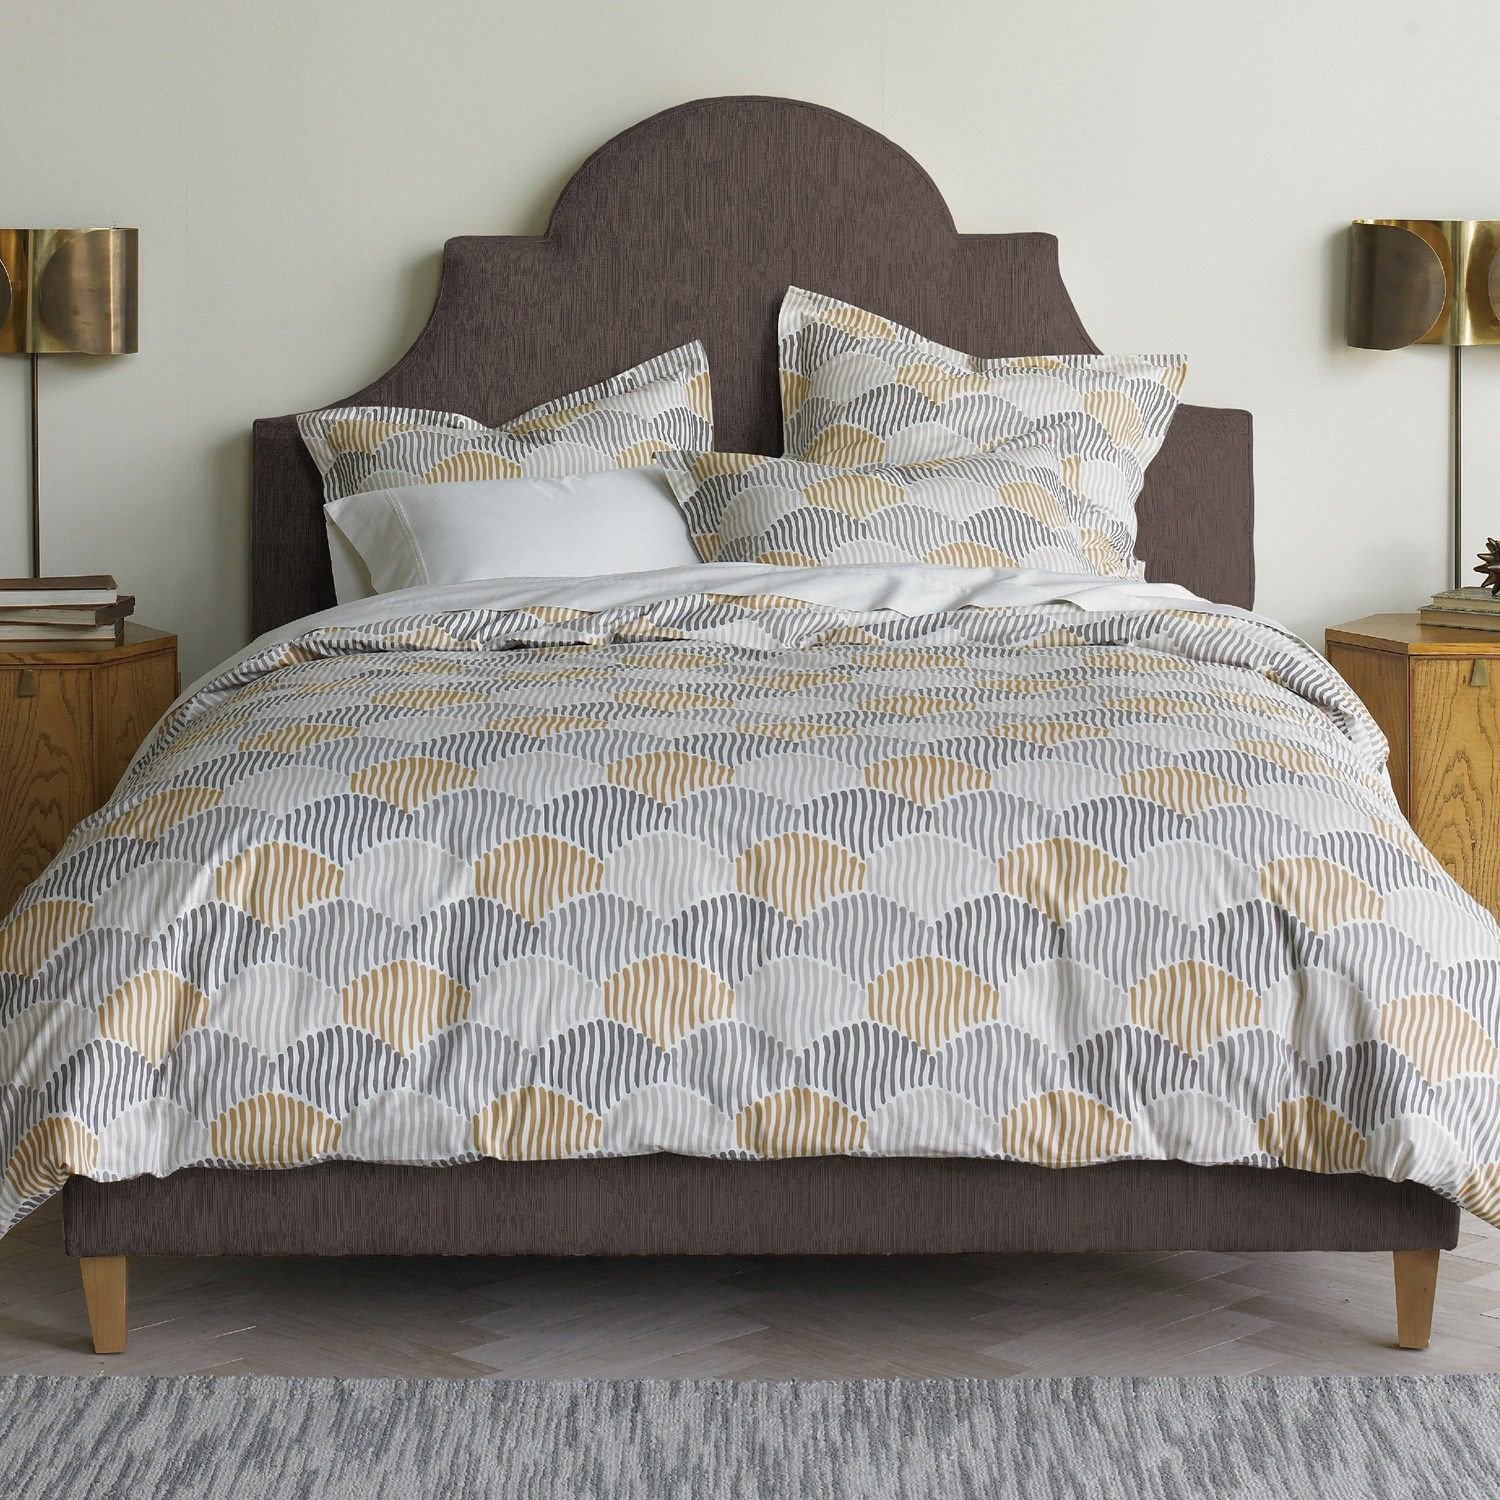 com remutex stewart pink feathers covers calvin silver klein drawn on large martha cover whim blush duvet and by scallop gray hand collection